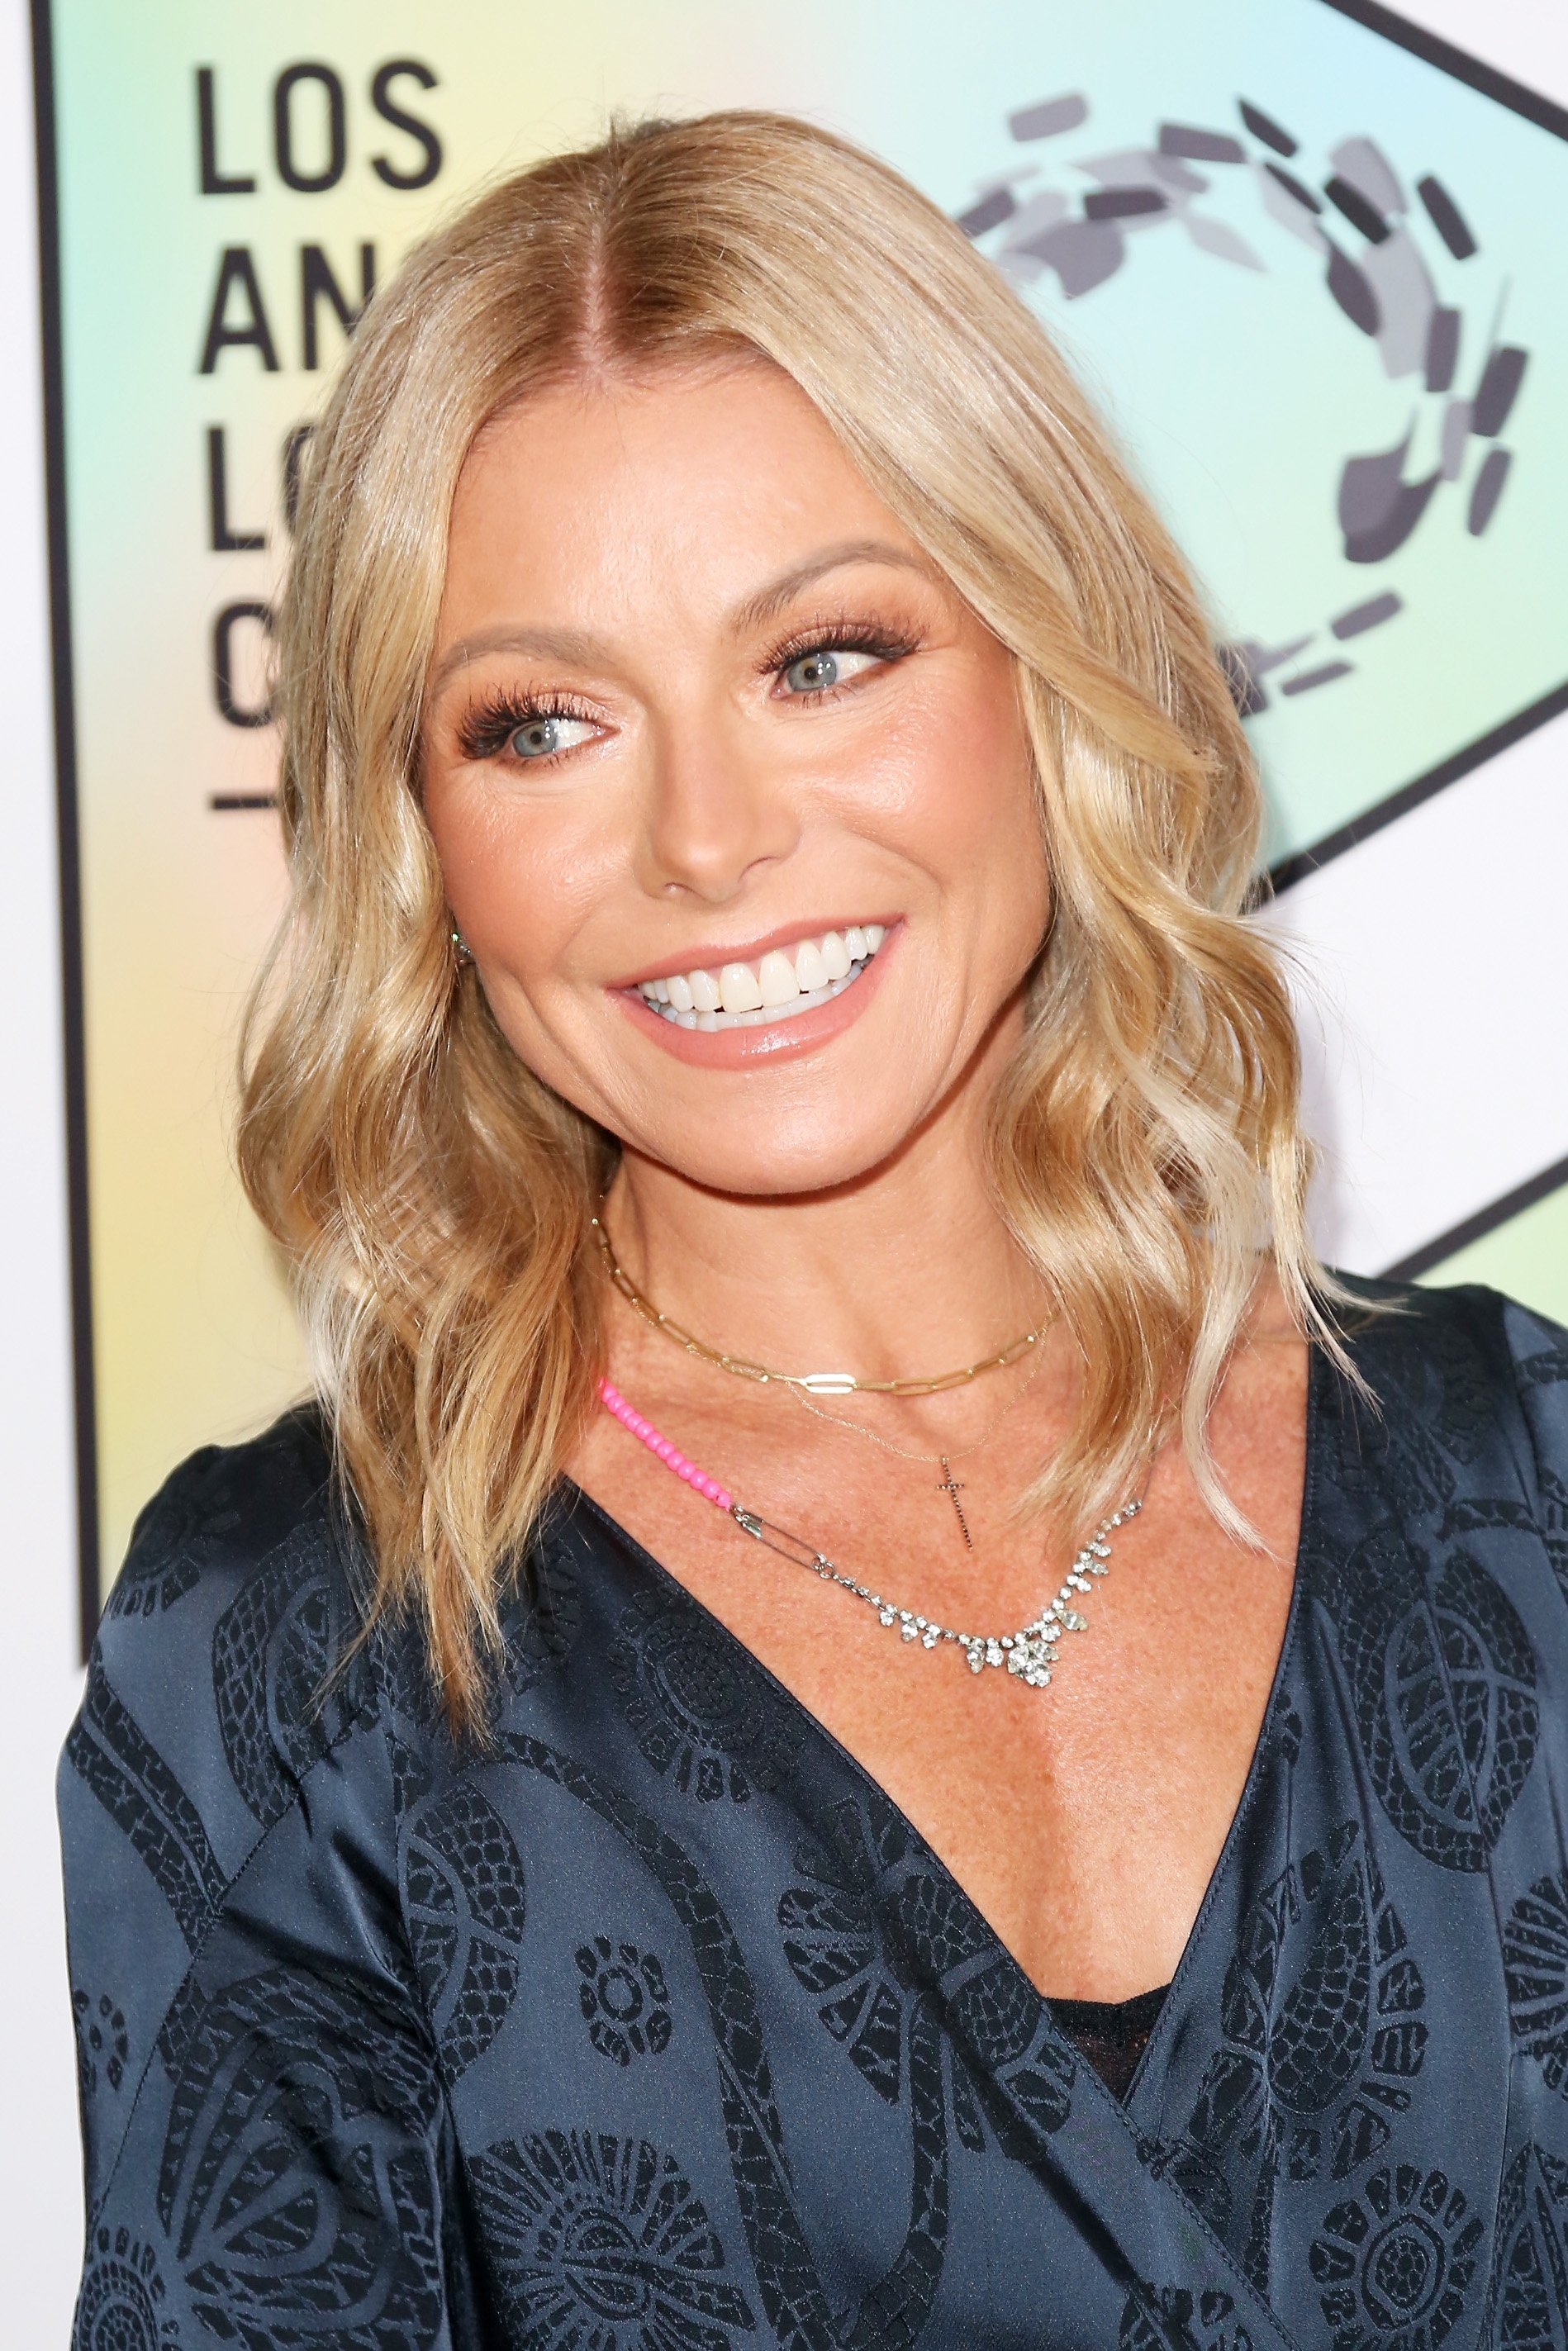 Image Credits: Getty Images / Maury Phillips | Host Kelly Ripa arrives at the Los Angeles LGBT Center's 49th Anniversary Gala Vanguard Awards at The Beverly Hilton Hotel on September 22, 2018 in Beverly Hills, California.